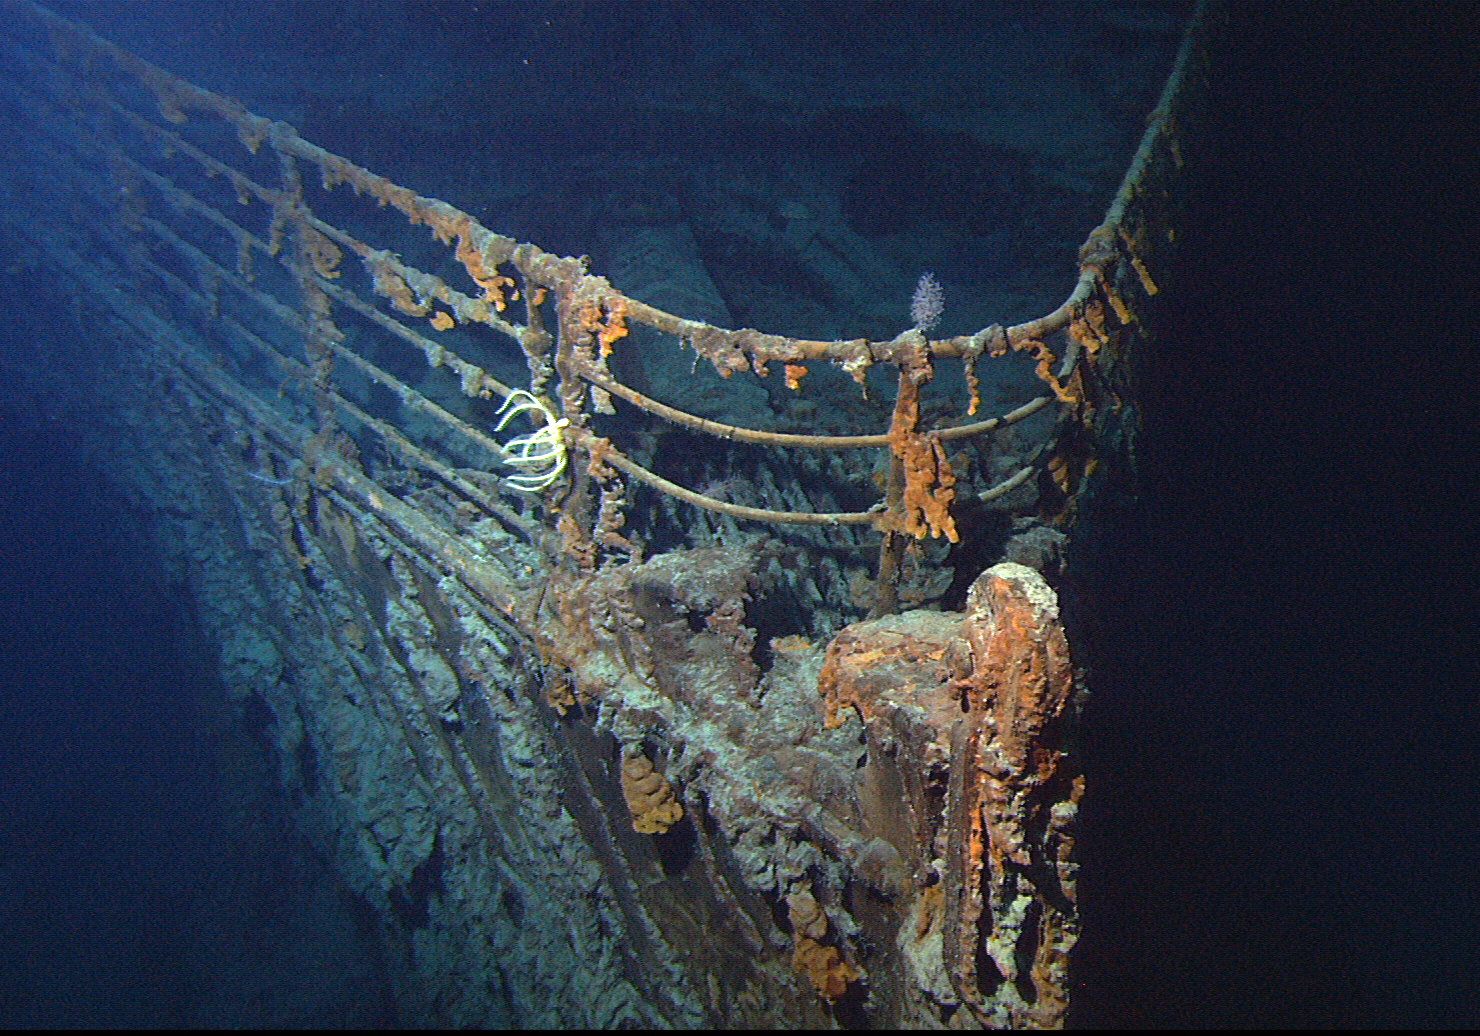 https://i1.wp.com/upload.wikimedia.org/wikipedia/commons/9/9c/Titanic_wreck_bow.jpg